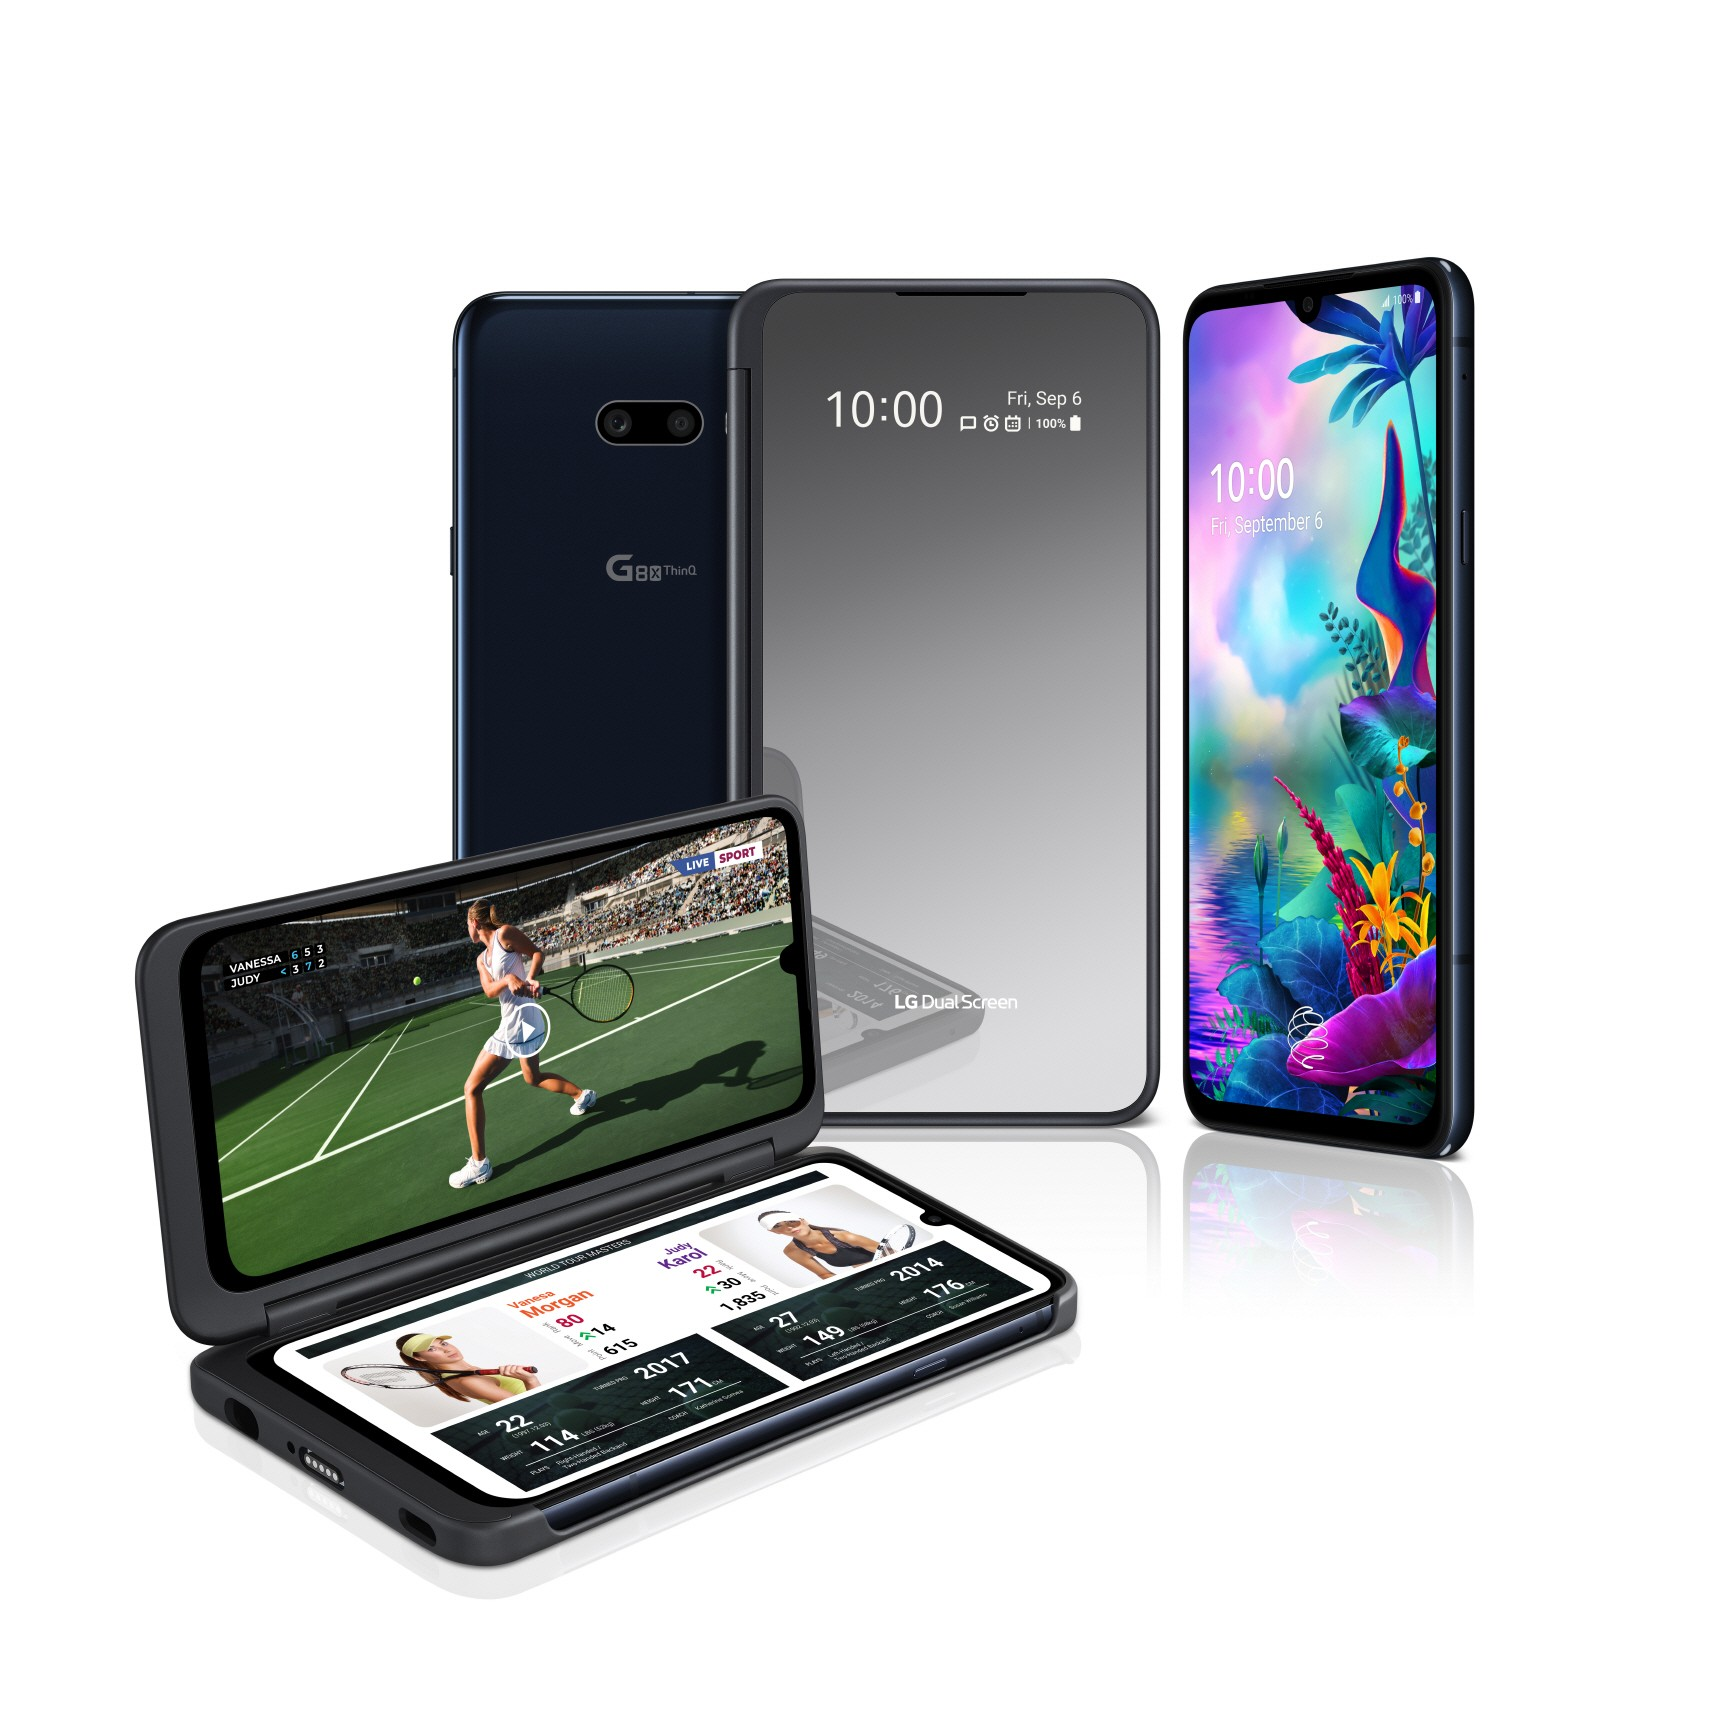 LG G8X ThinQ – Here's all you need to know about LG's foldable phone